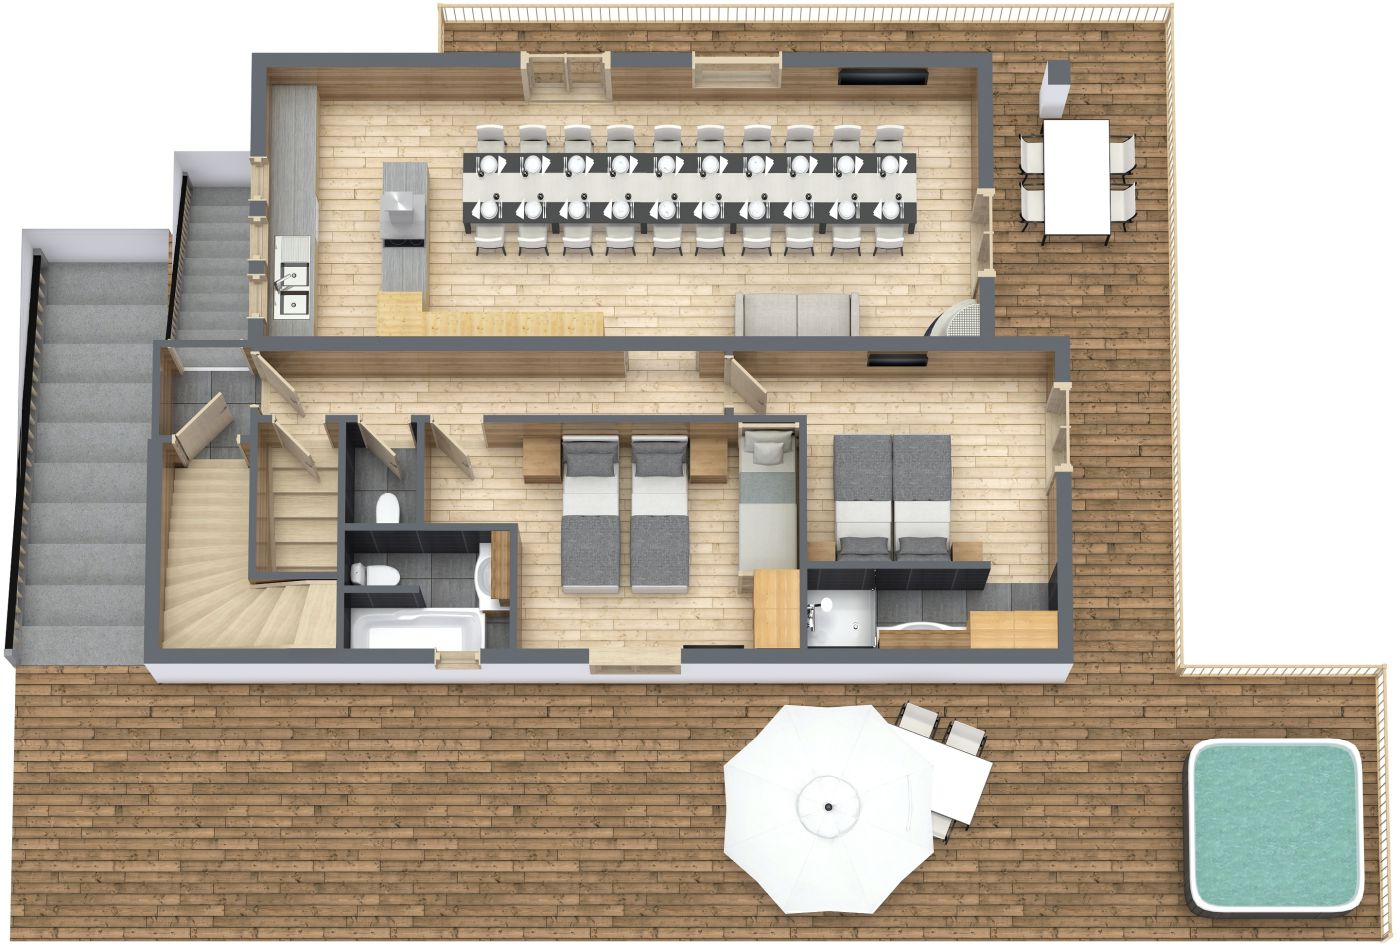 Floorplan of Chalet La Rocade Middle FLoor